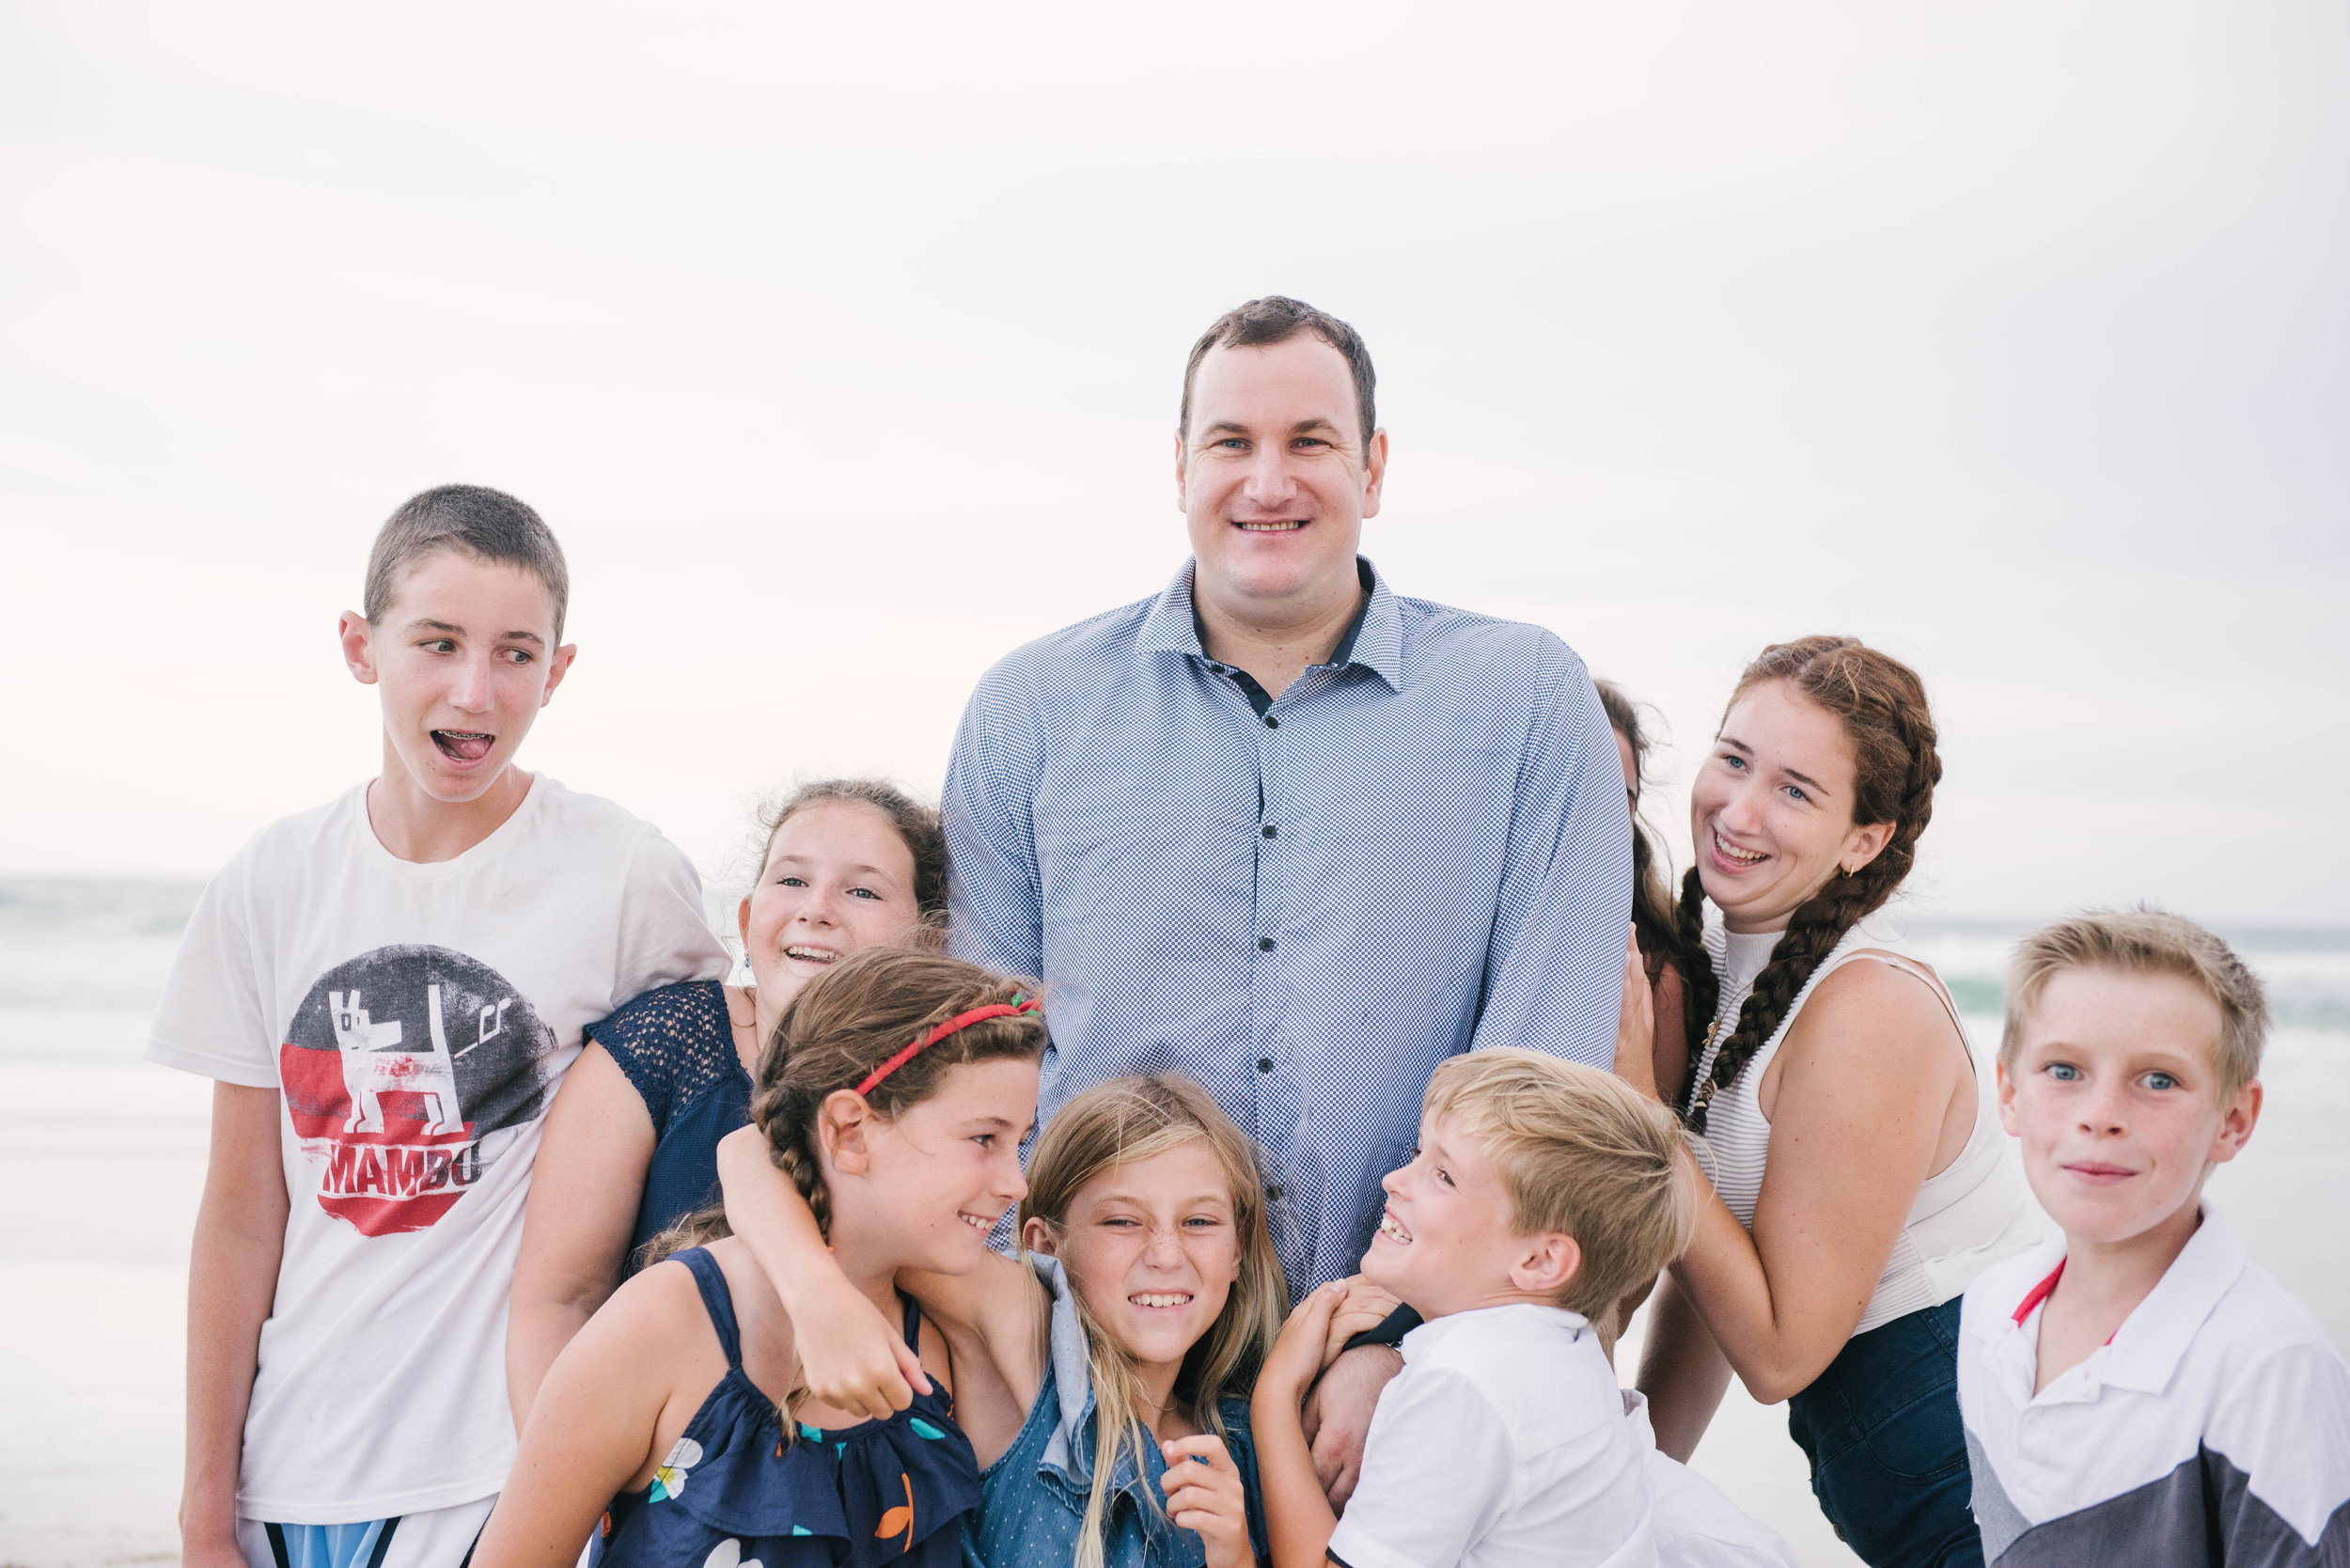 Ness family reunion-family-photography-wedding-photography-family-children-goldcoast-northernNSW-86.jpg